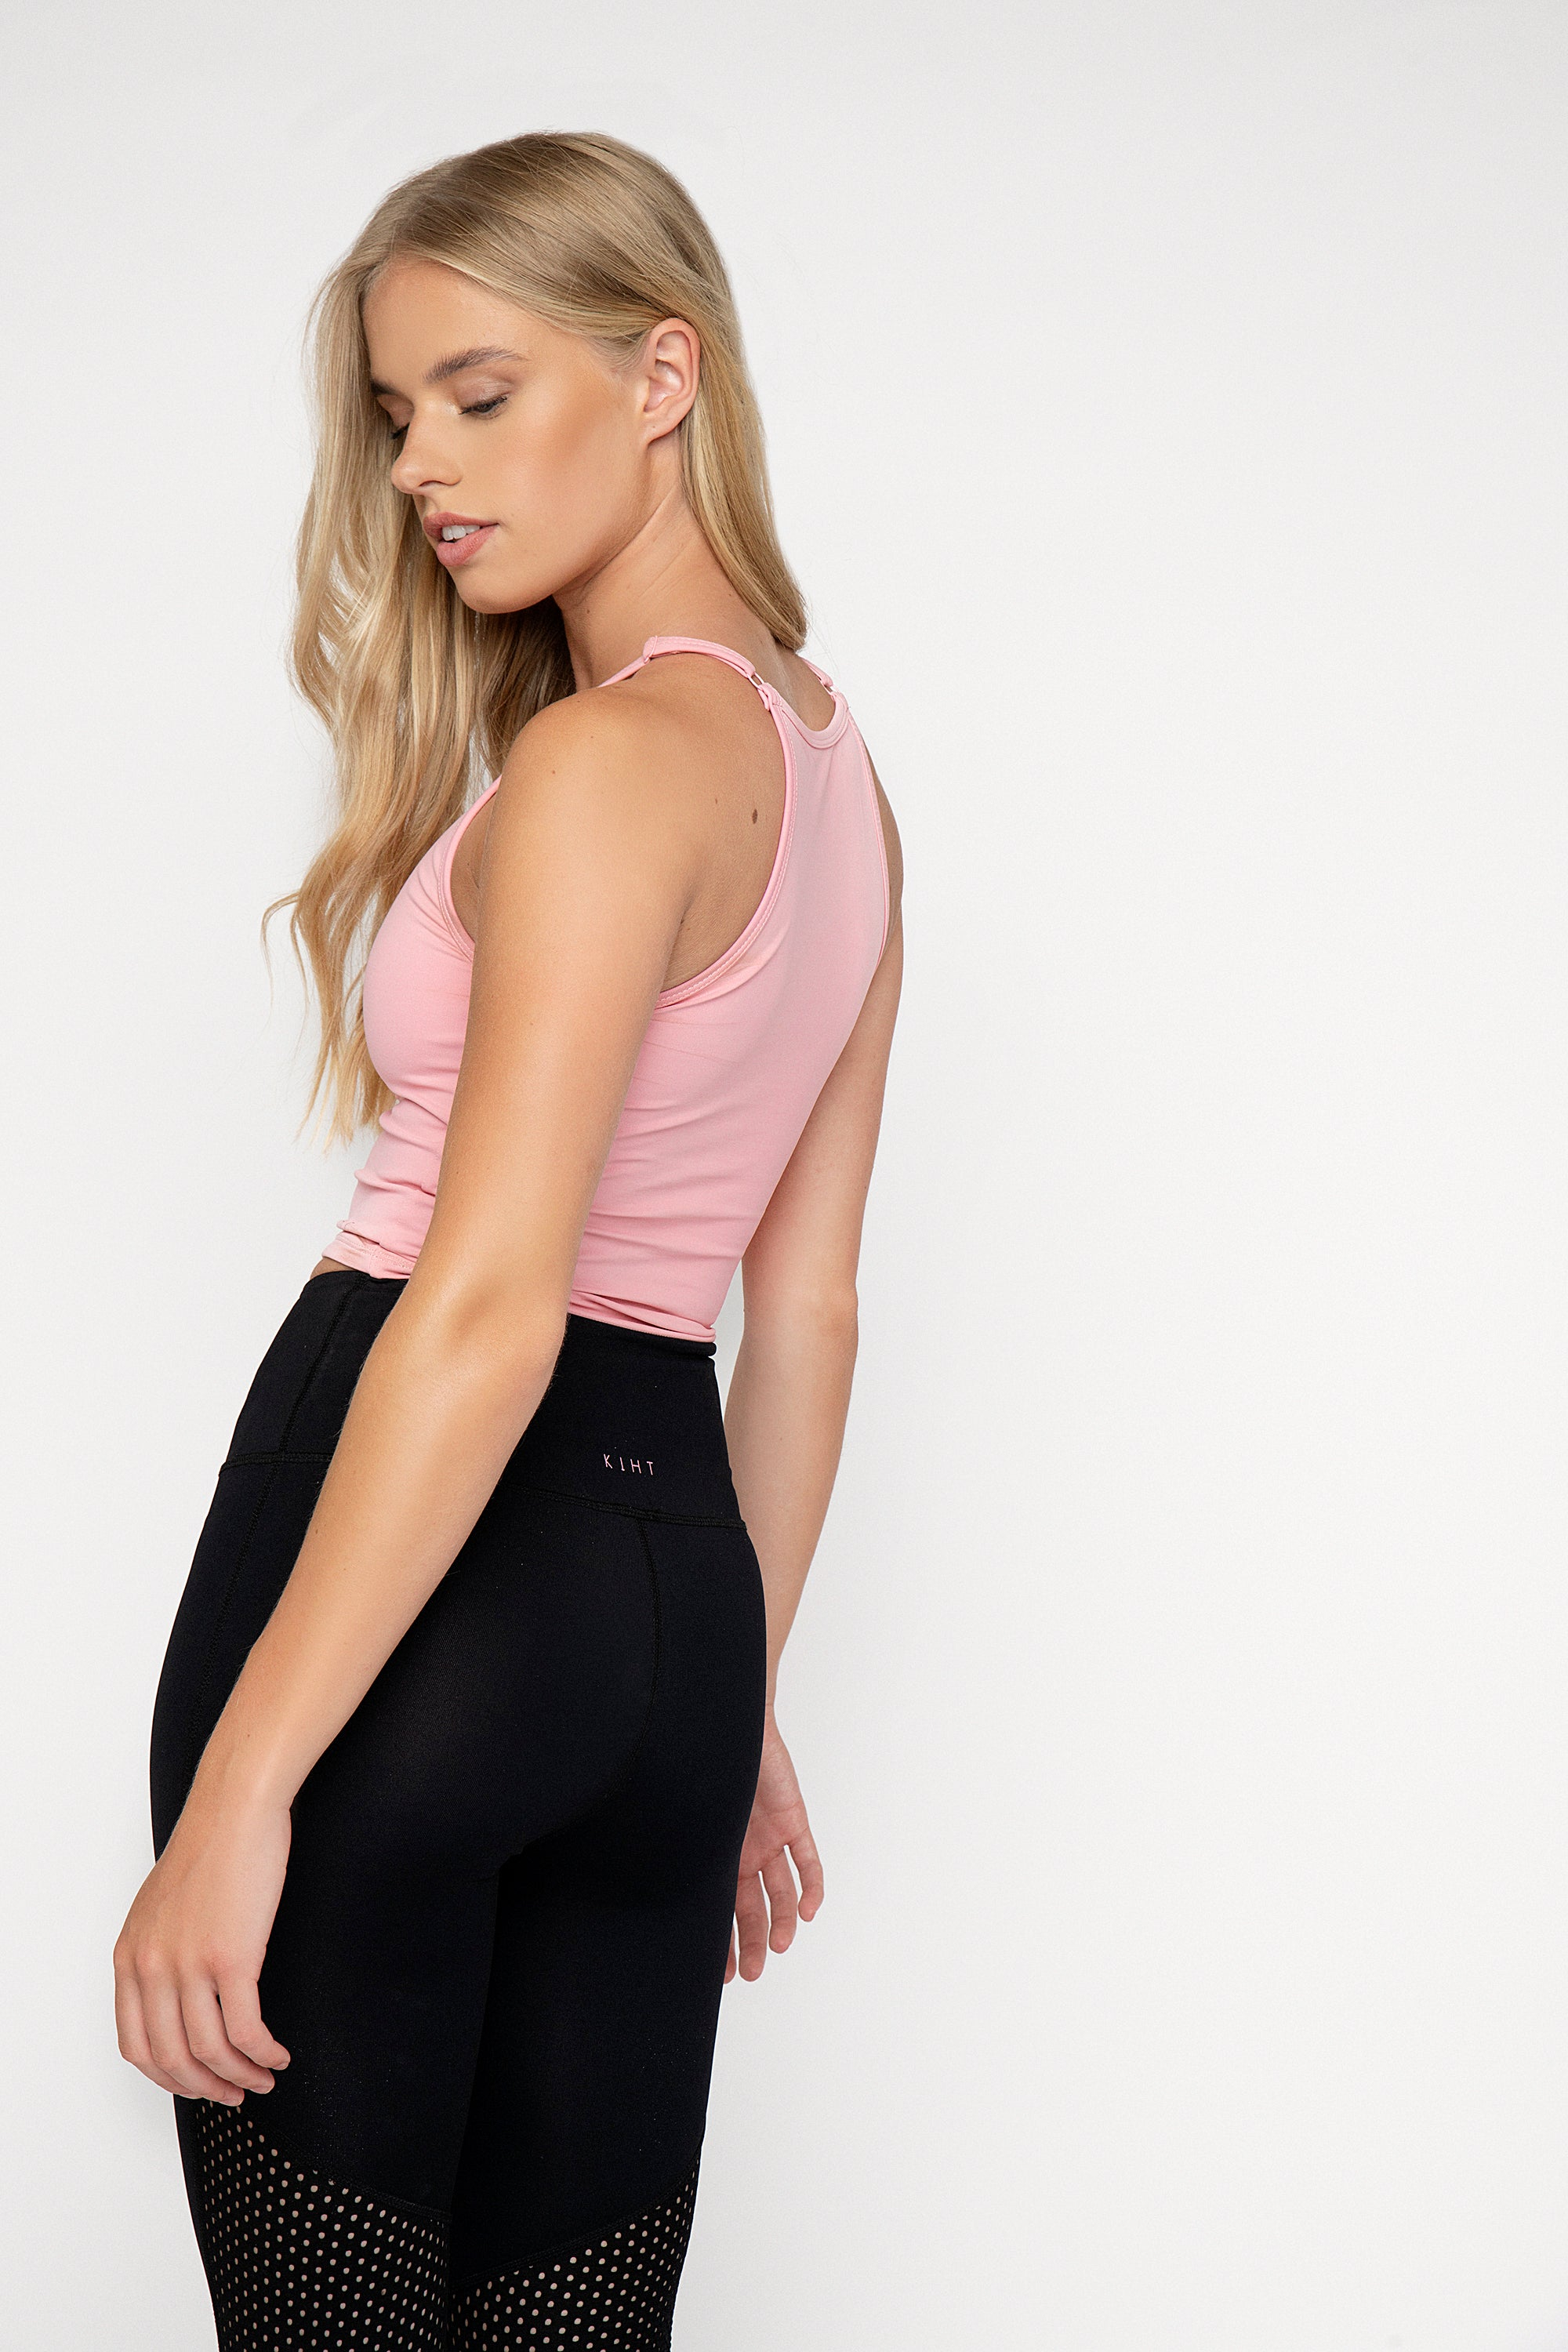 90's style high neck fitted gym top. Mid crop length with adjustable straps, double lined for support. Pink Lemonade colour. Back